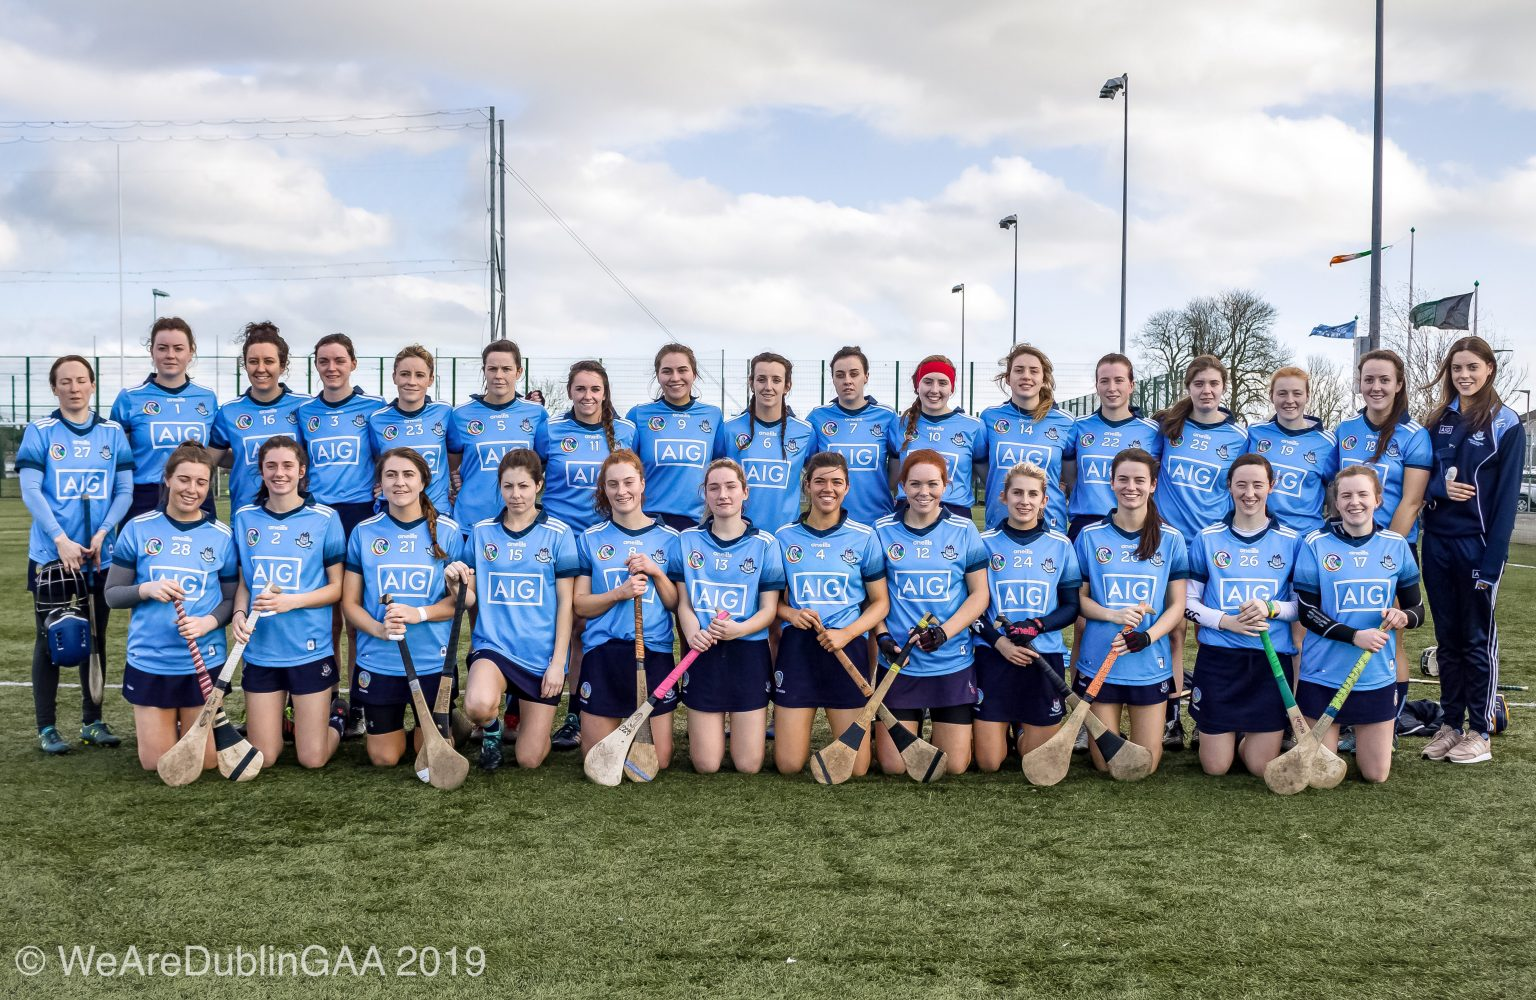 The Dublin Camogie Senior team in sky blue jerseys and navy skorts pose for a squad photo ahead of a league game